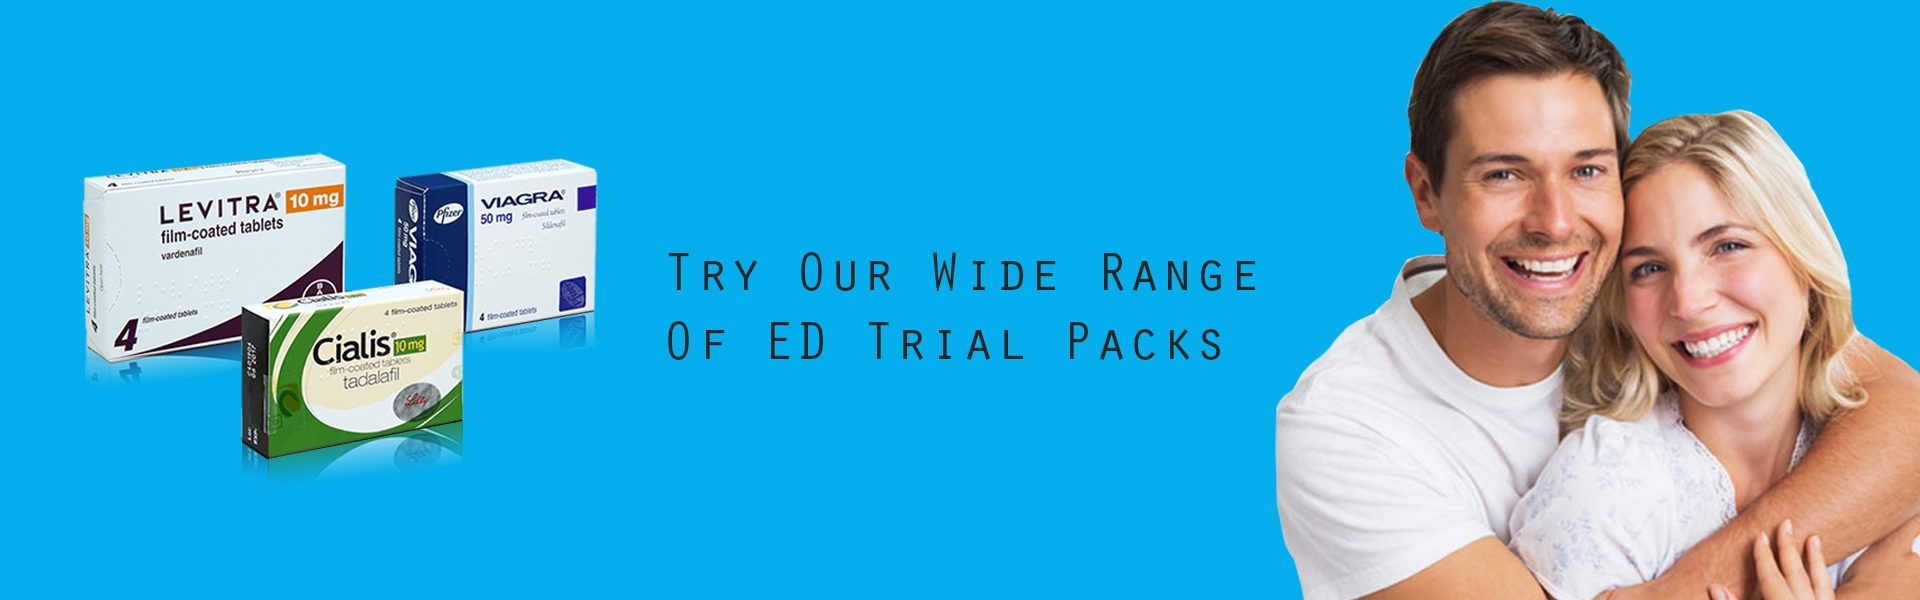 Ed-Trial-pack